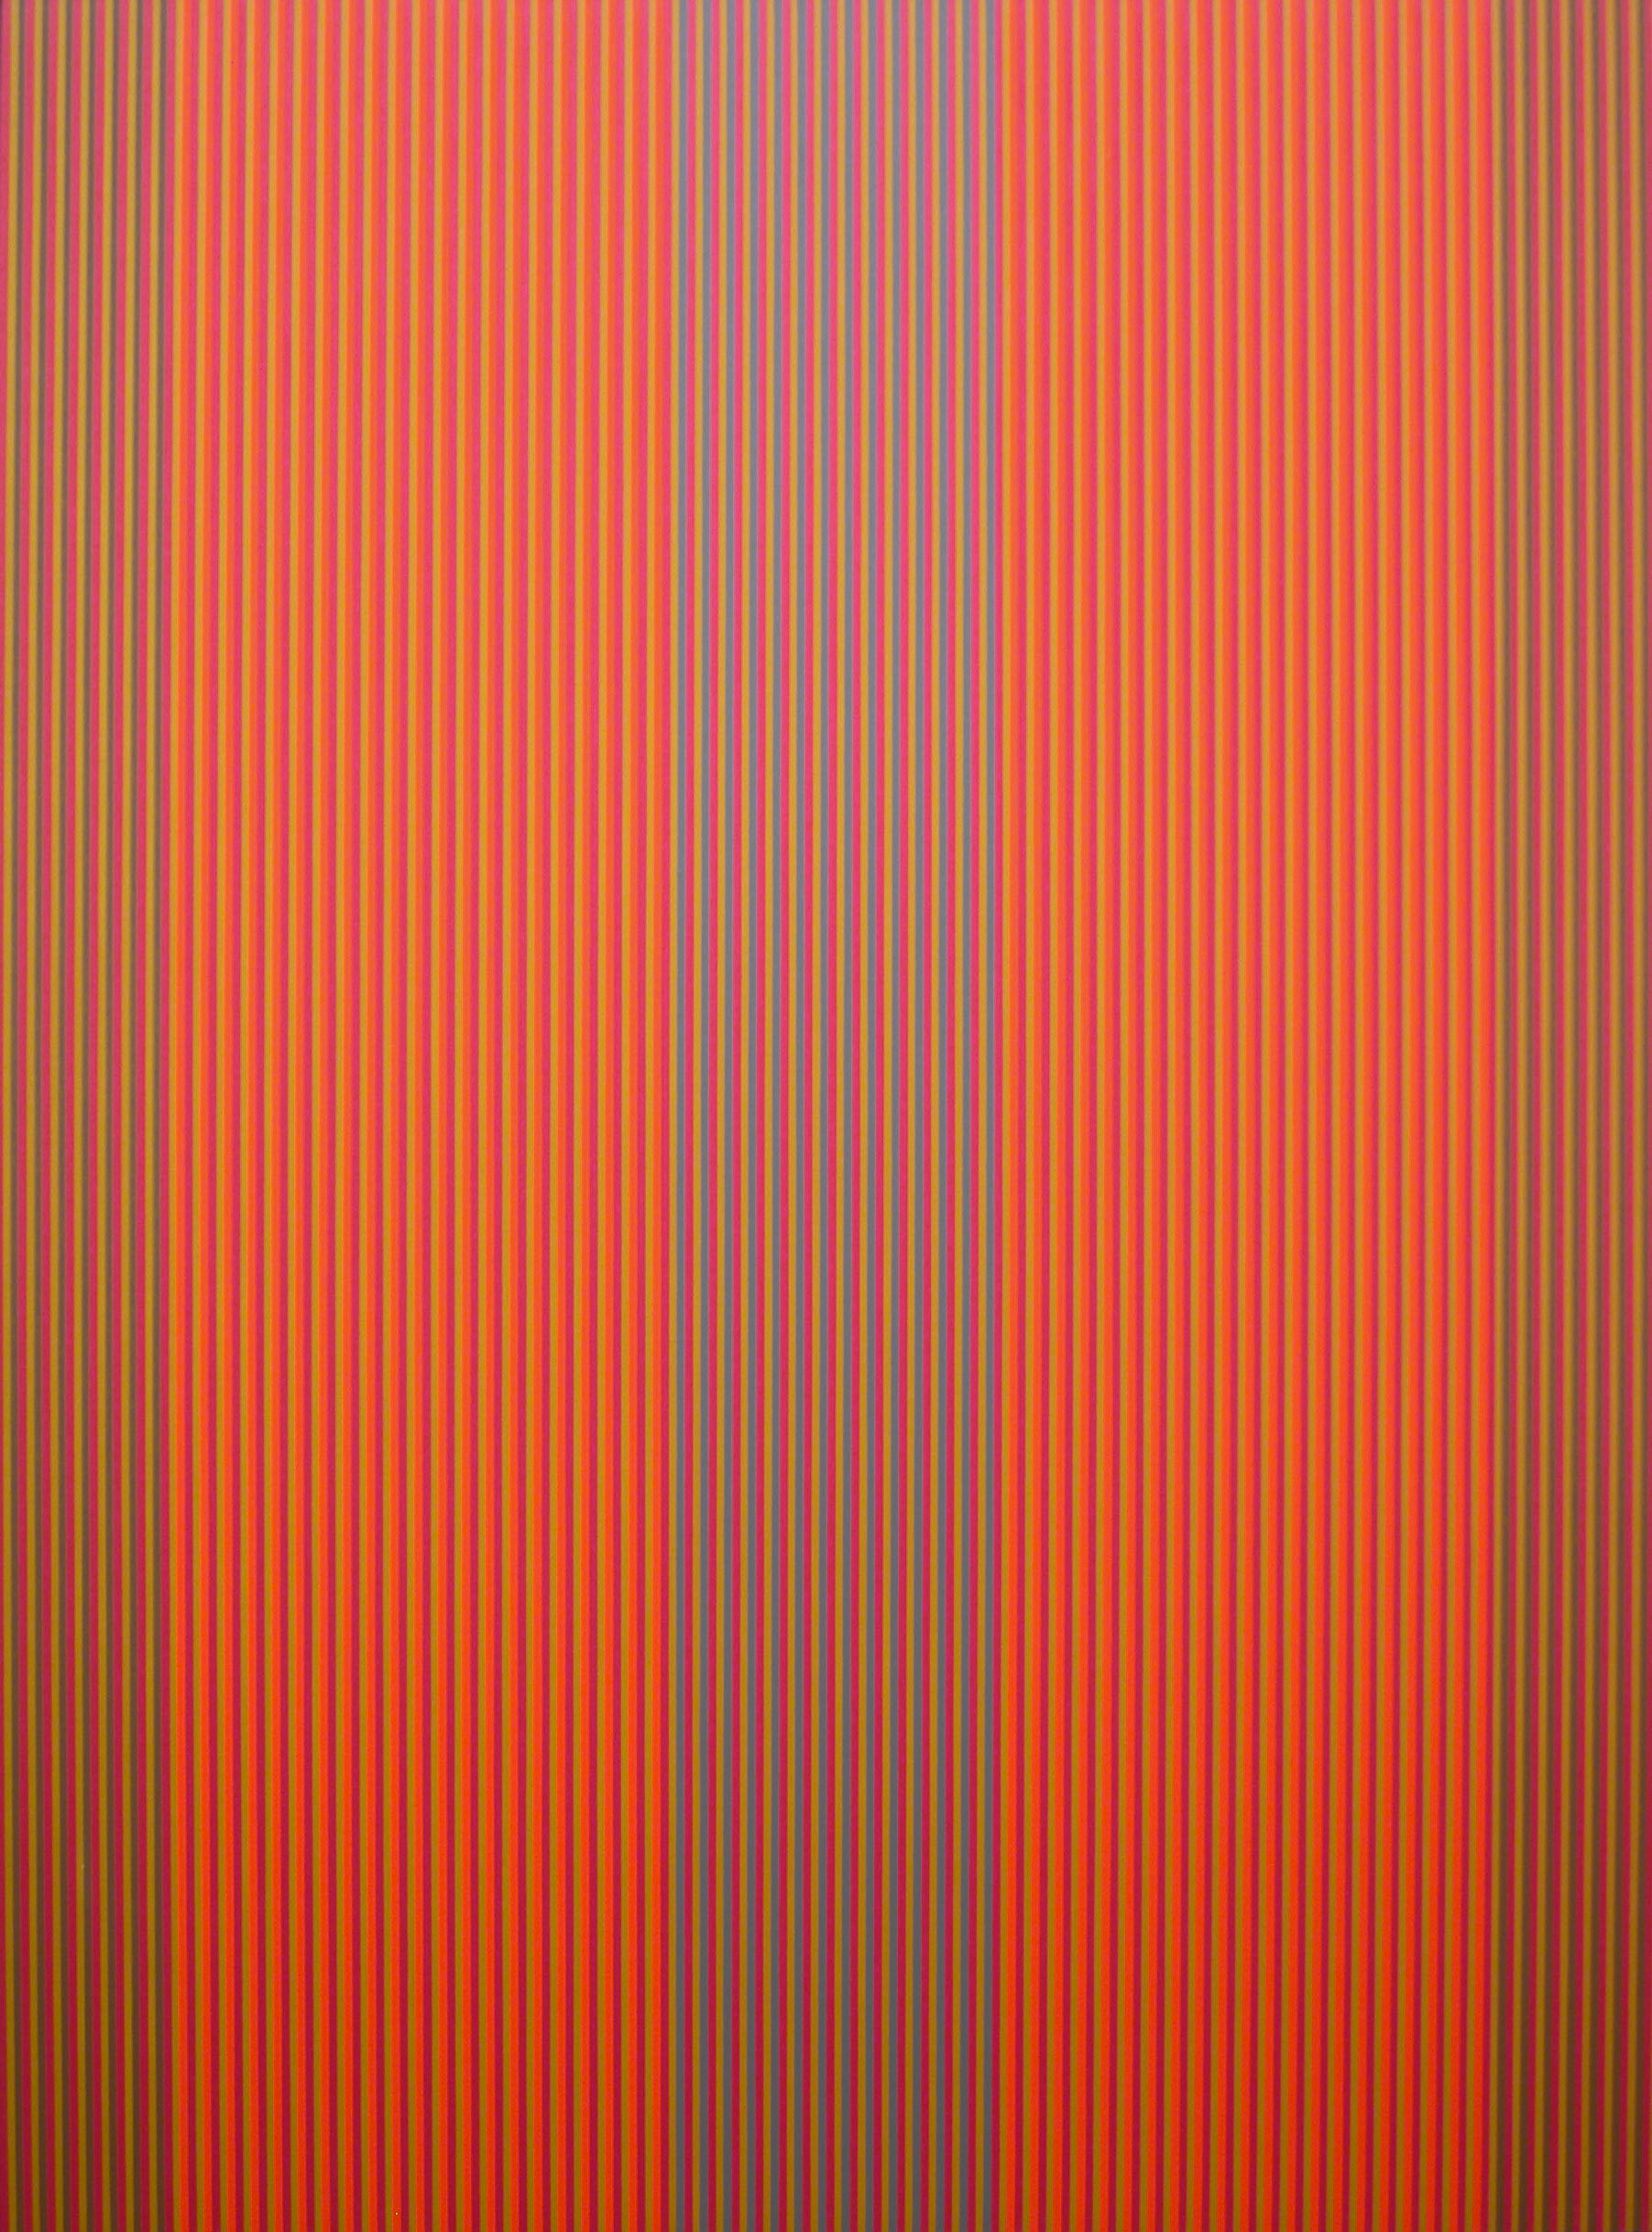 #22 (red, orange) , 1979  oil on canvas 72 x 54 inches; 182.9 x 137.2 centimeters